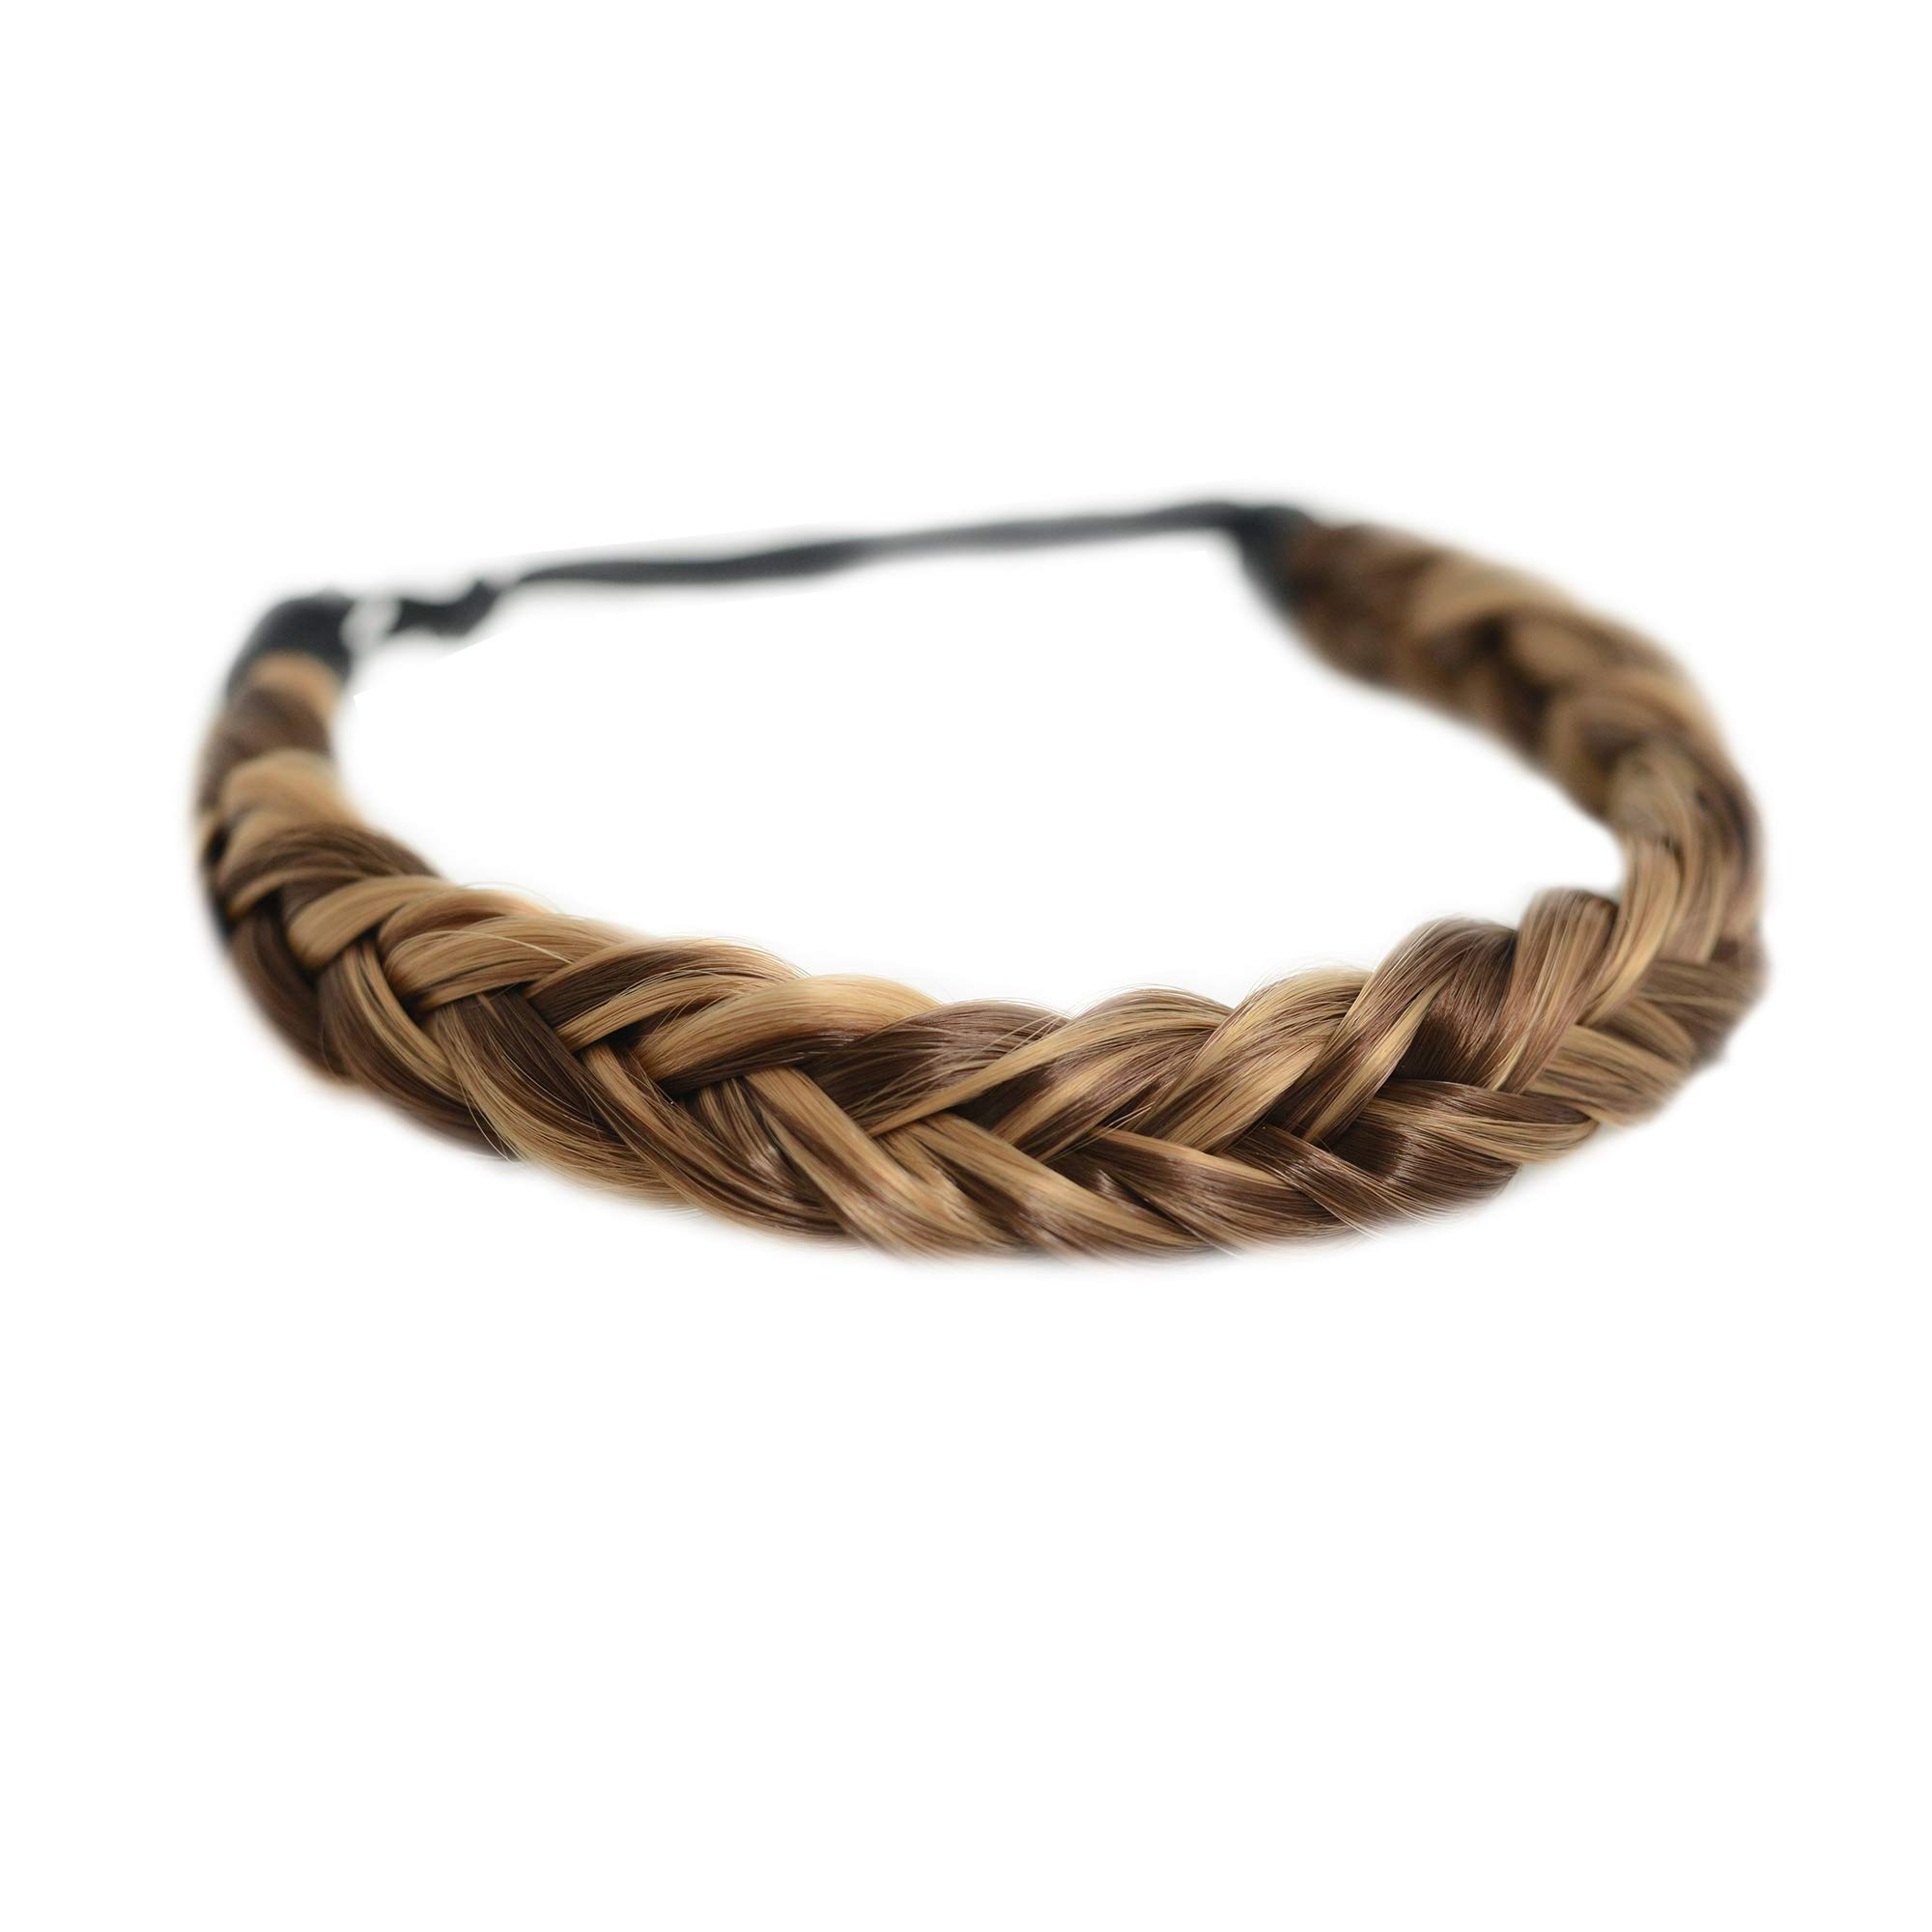 Madison Braids Women's Two Strand Headband Hair Braid Natural Looking Synthetic Hair Piece Extension - Lulu - Highlighted by MADISON BRAIDS